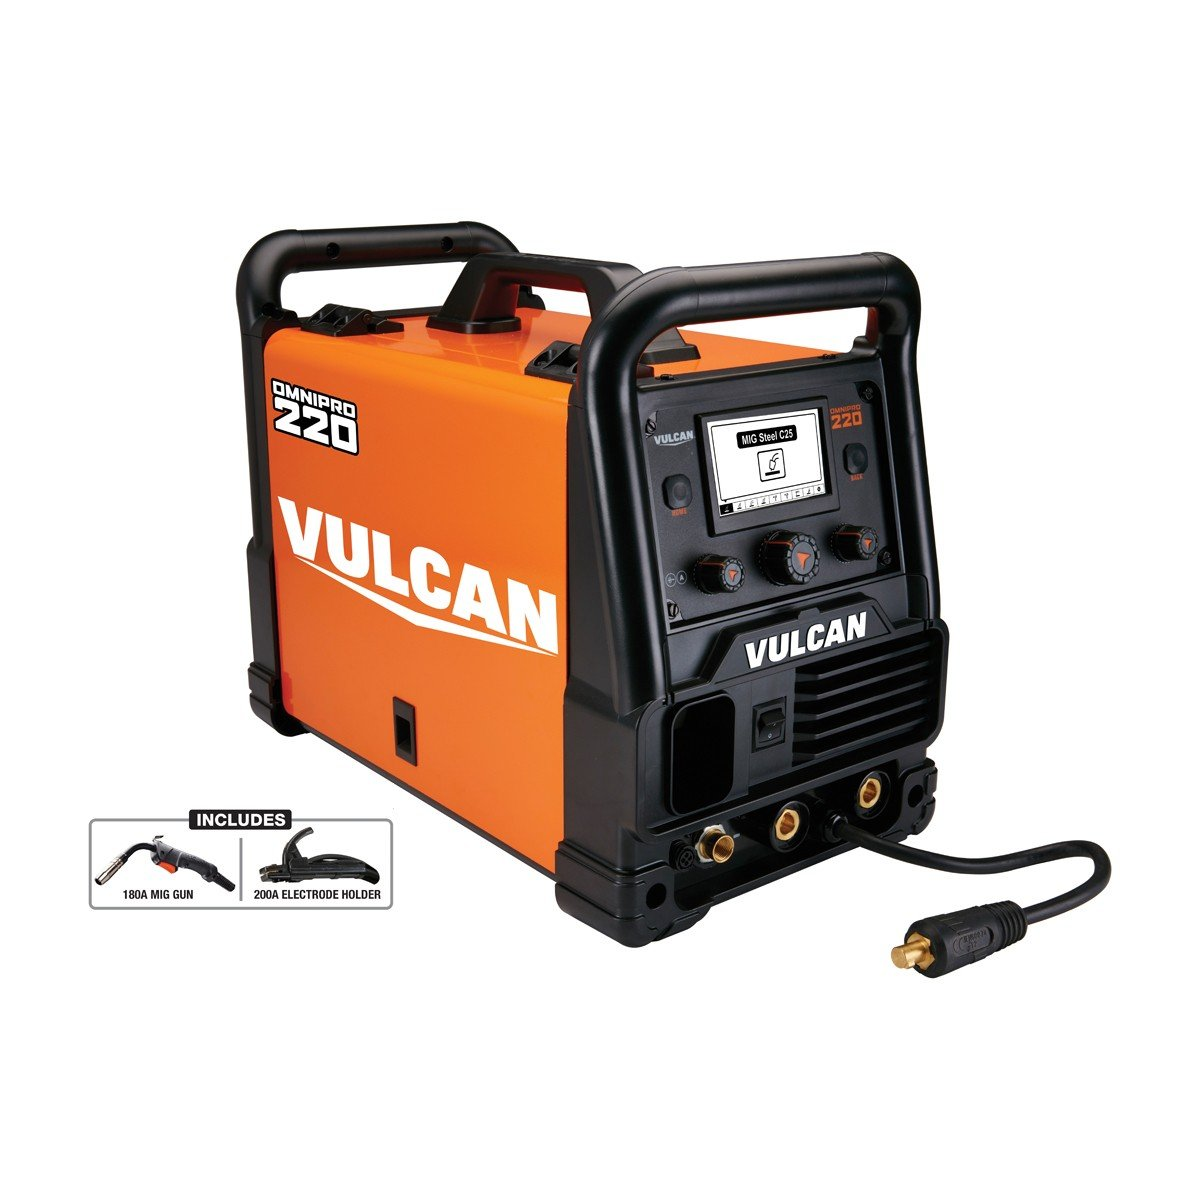 Vulcan OmniPro 220 Multiprocess Welder with 120/240 Volt Input by Vulcan (Image #1)